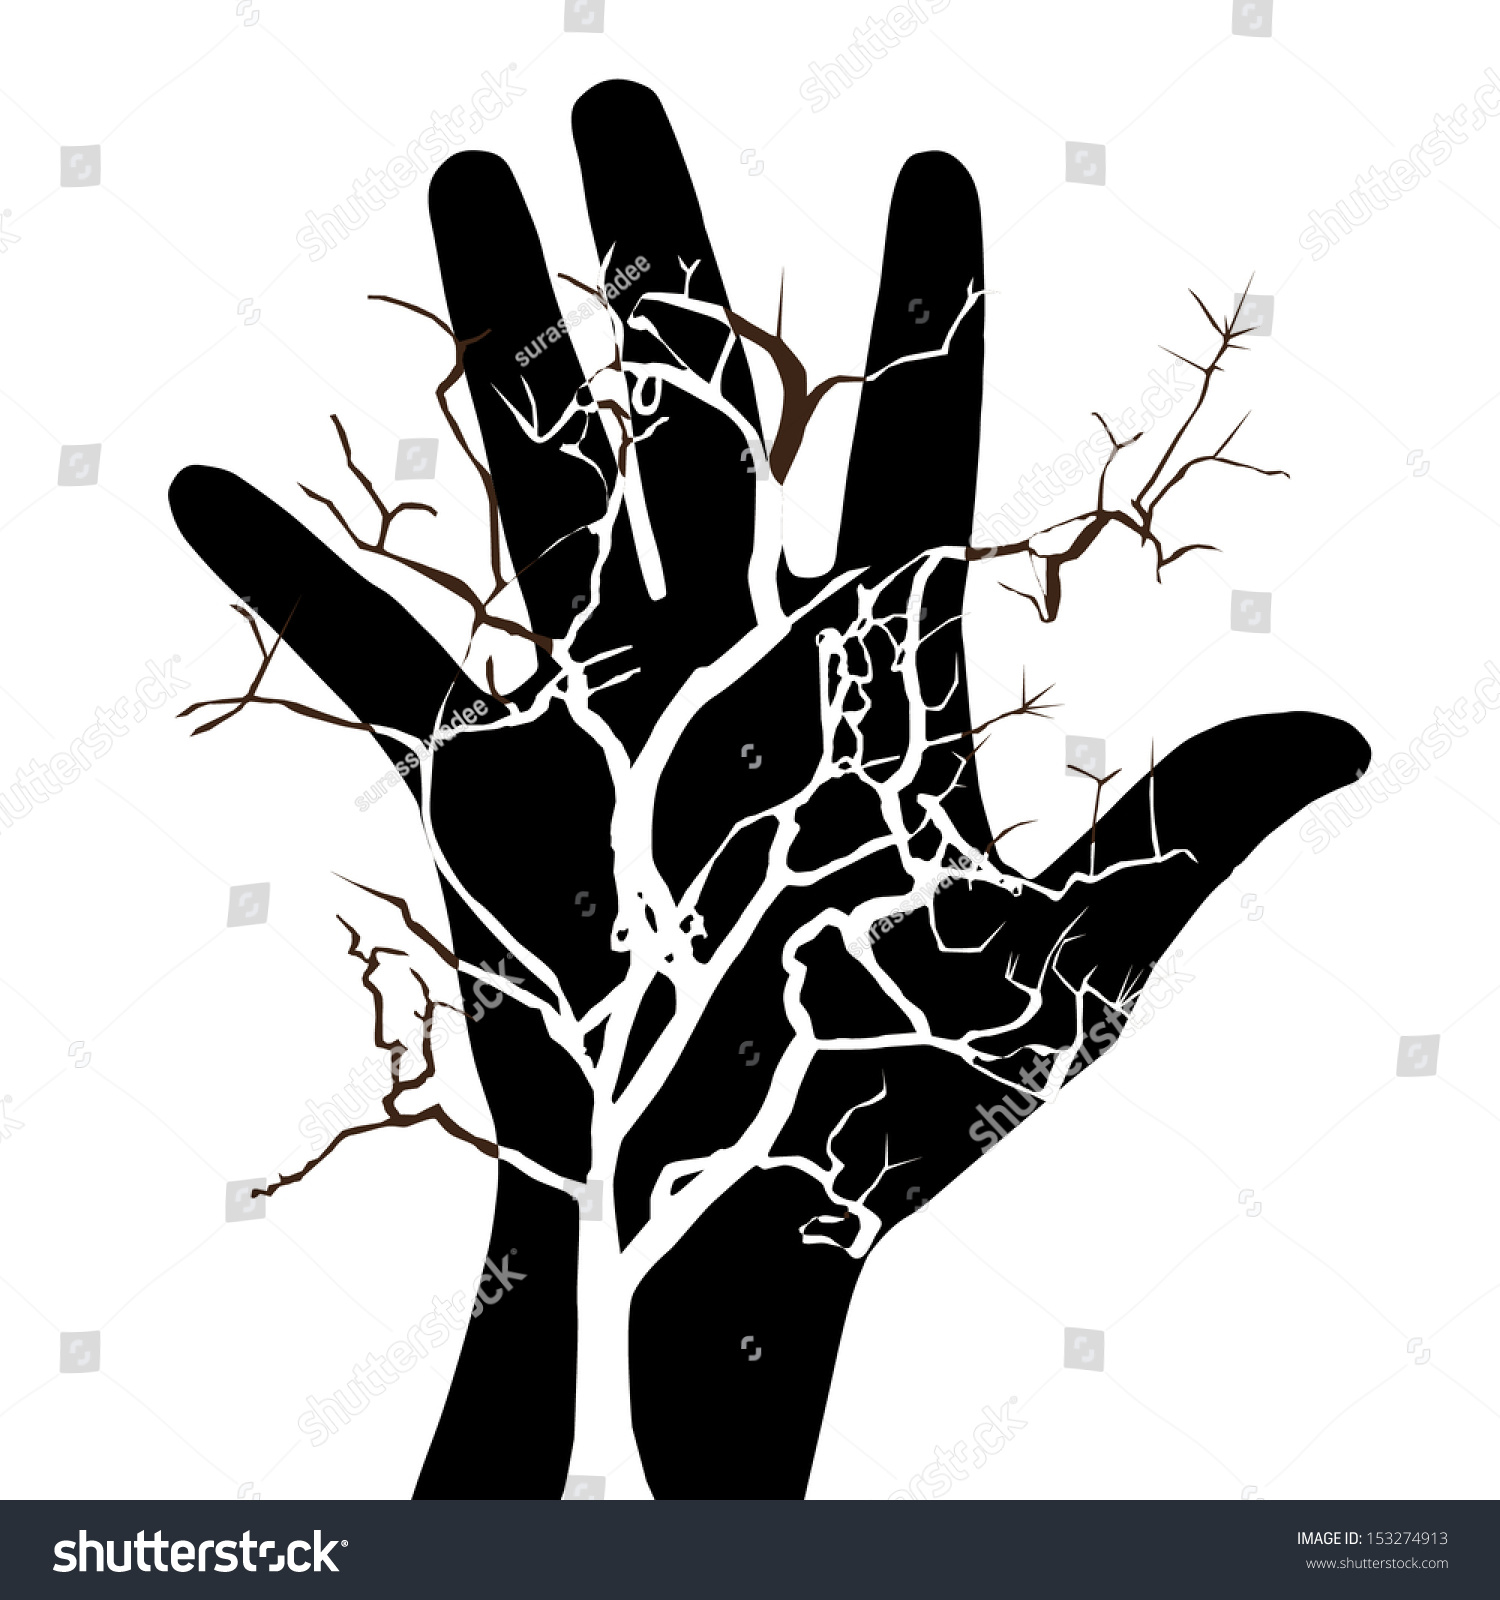 Abstract Artistic Hand Tree Dry Symbol Stock Vector Hd Royalty Free